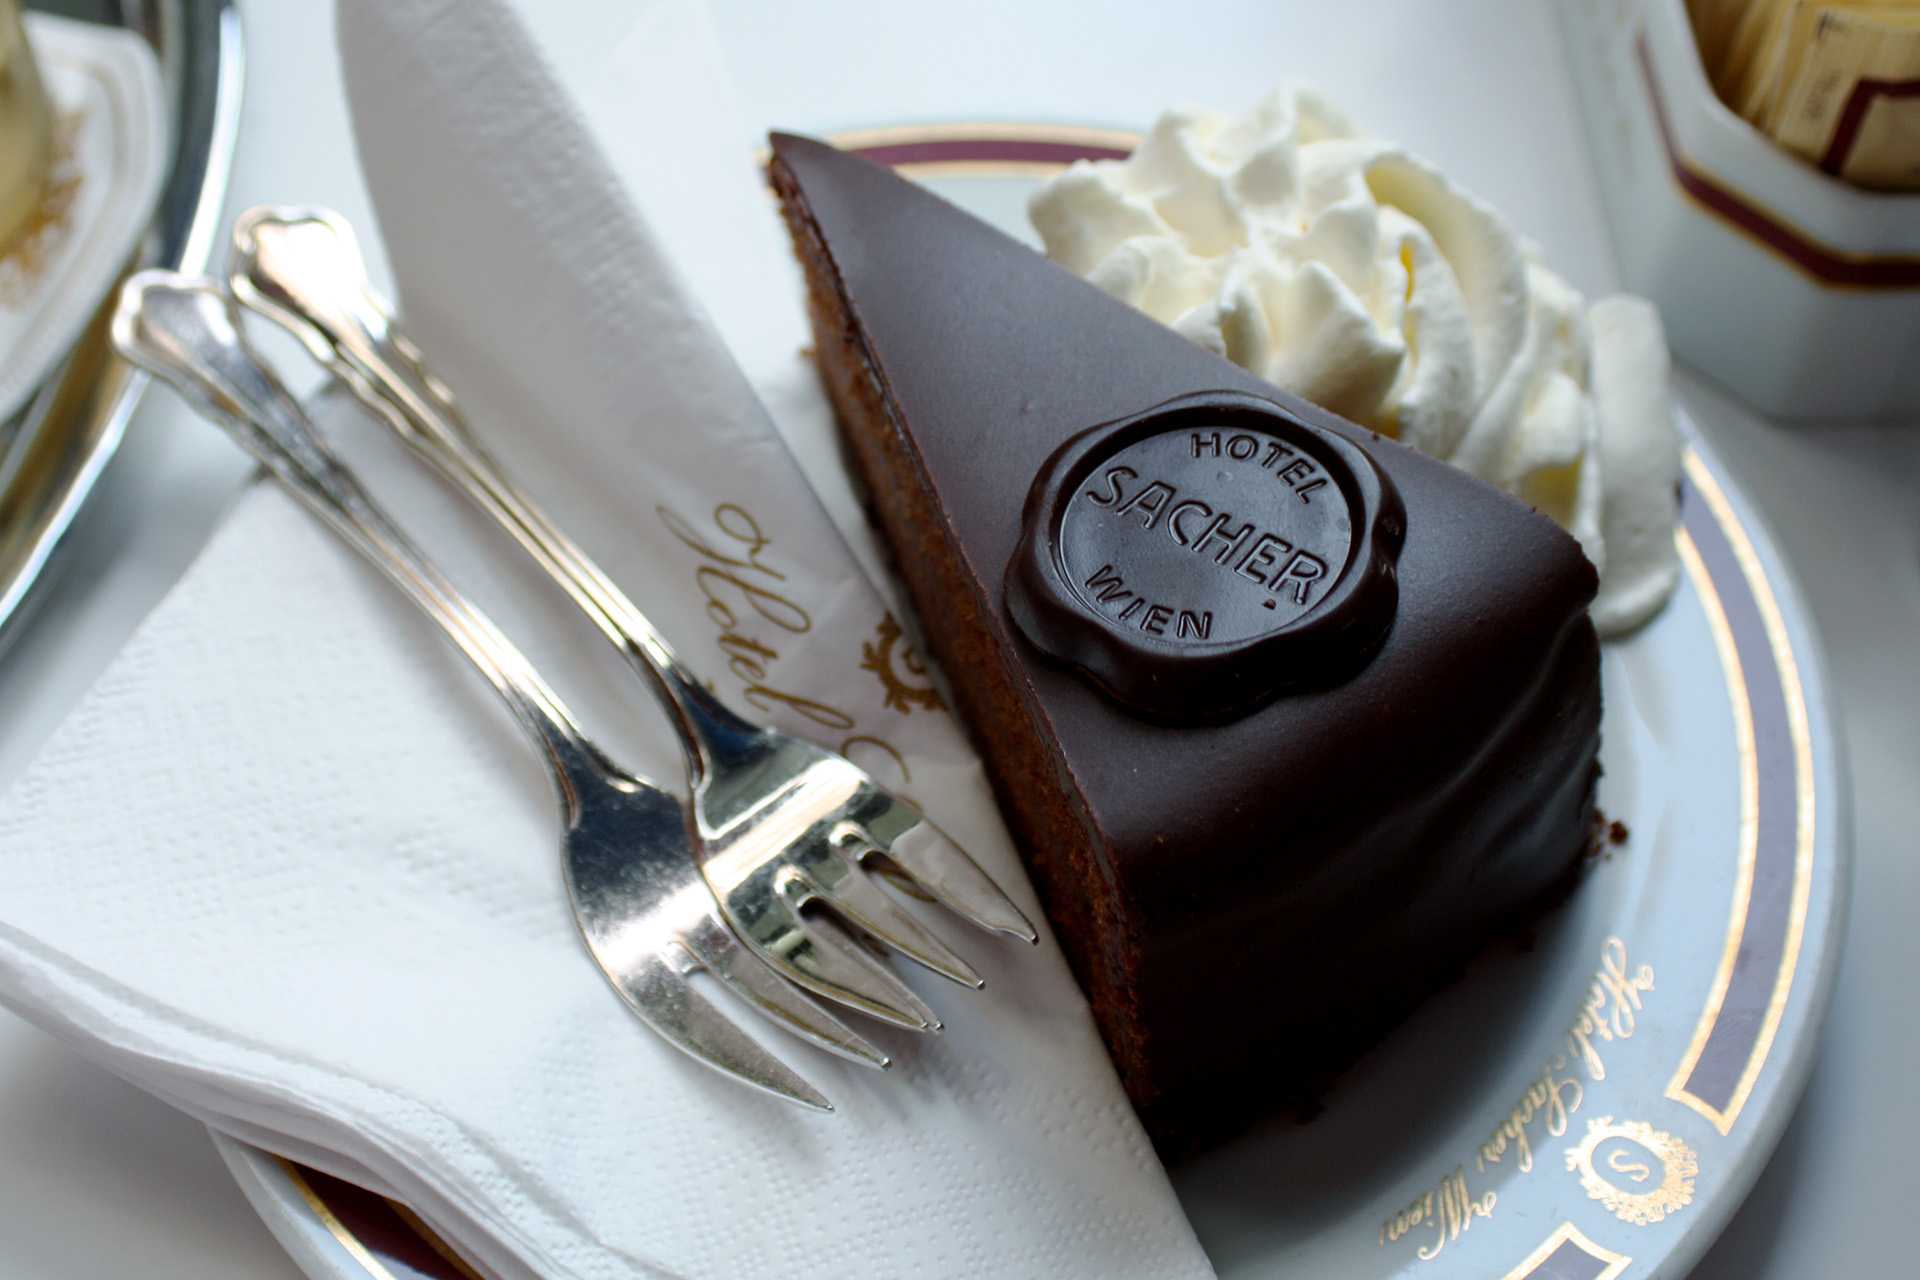 Famous Cafe Sacher chocolate cake.